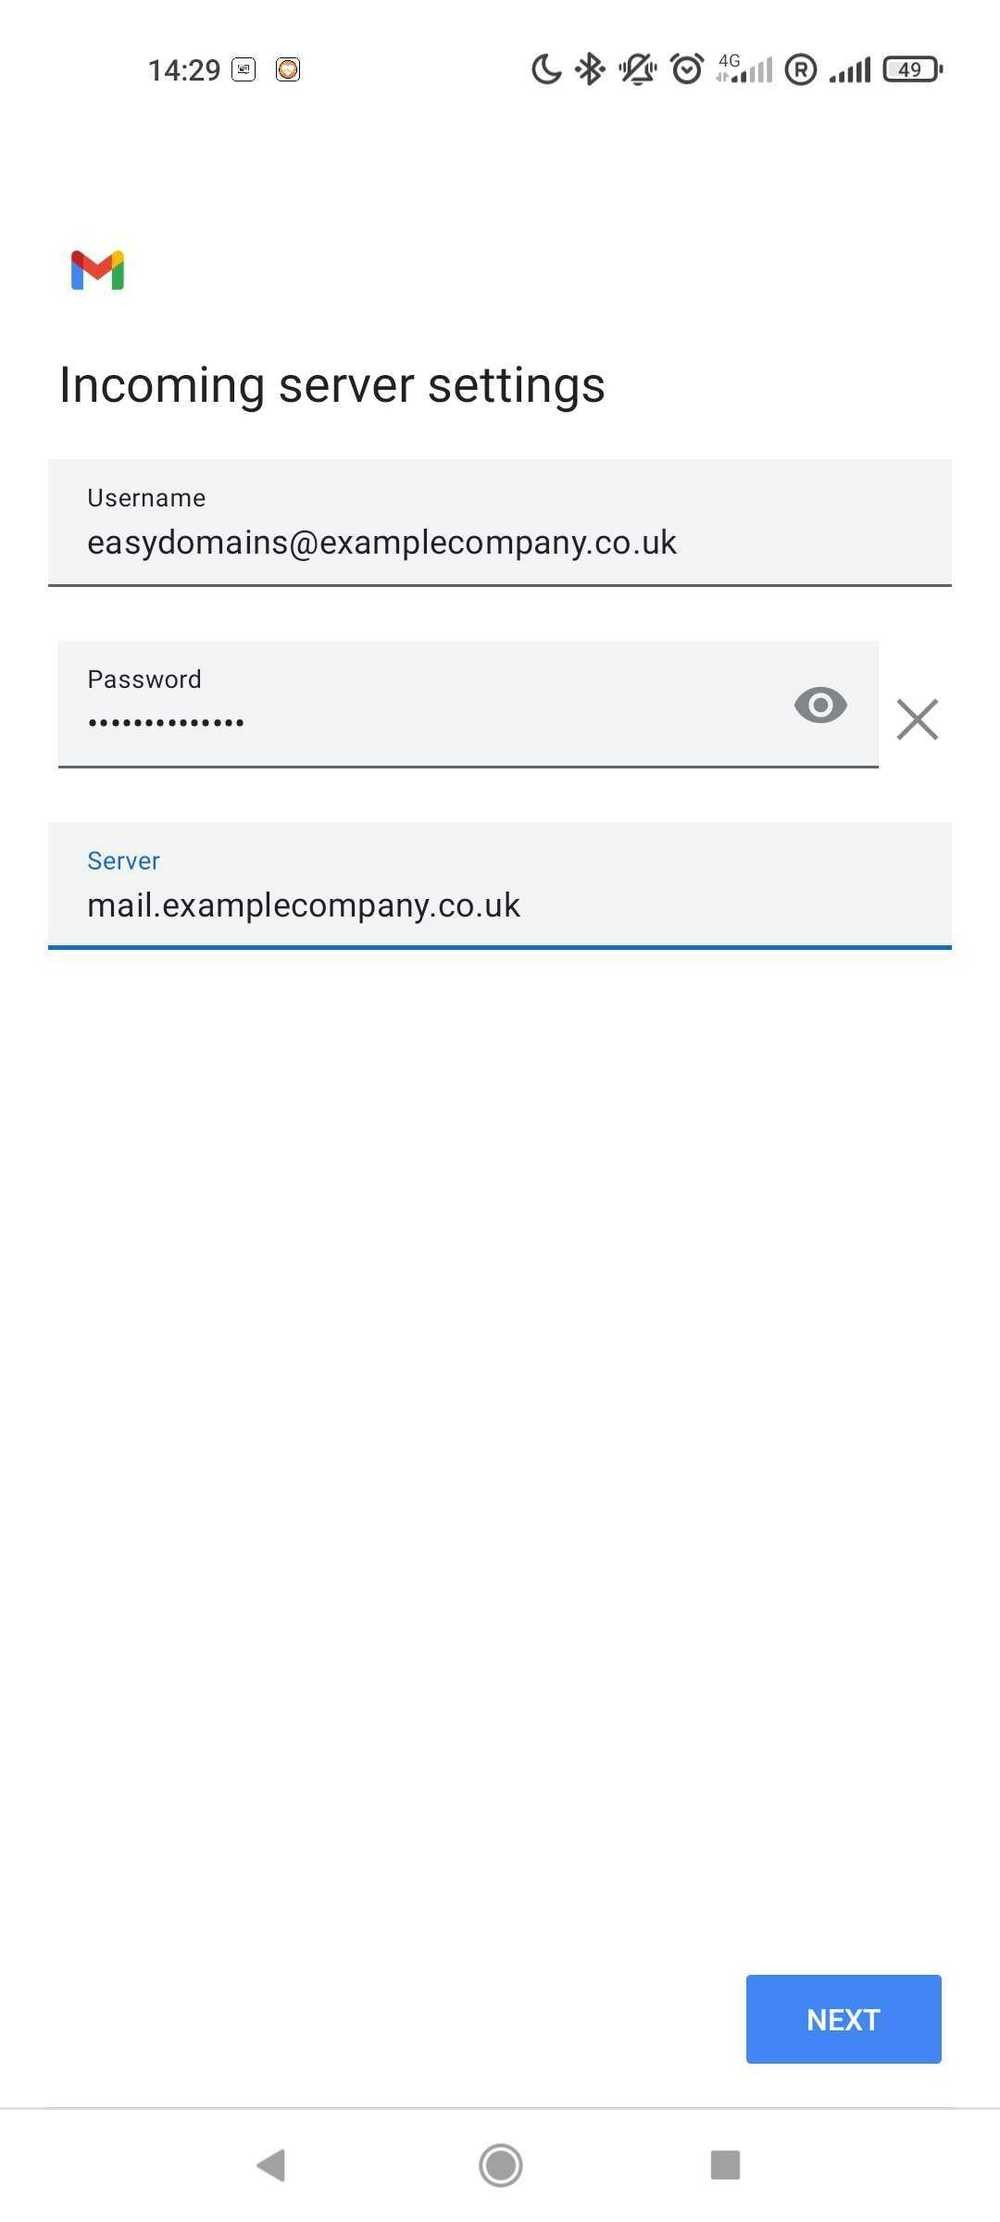 Account setup section of the default Android mail app